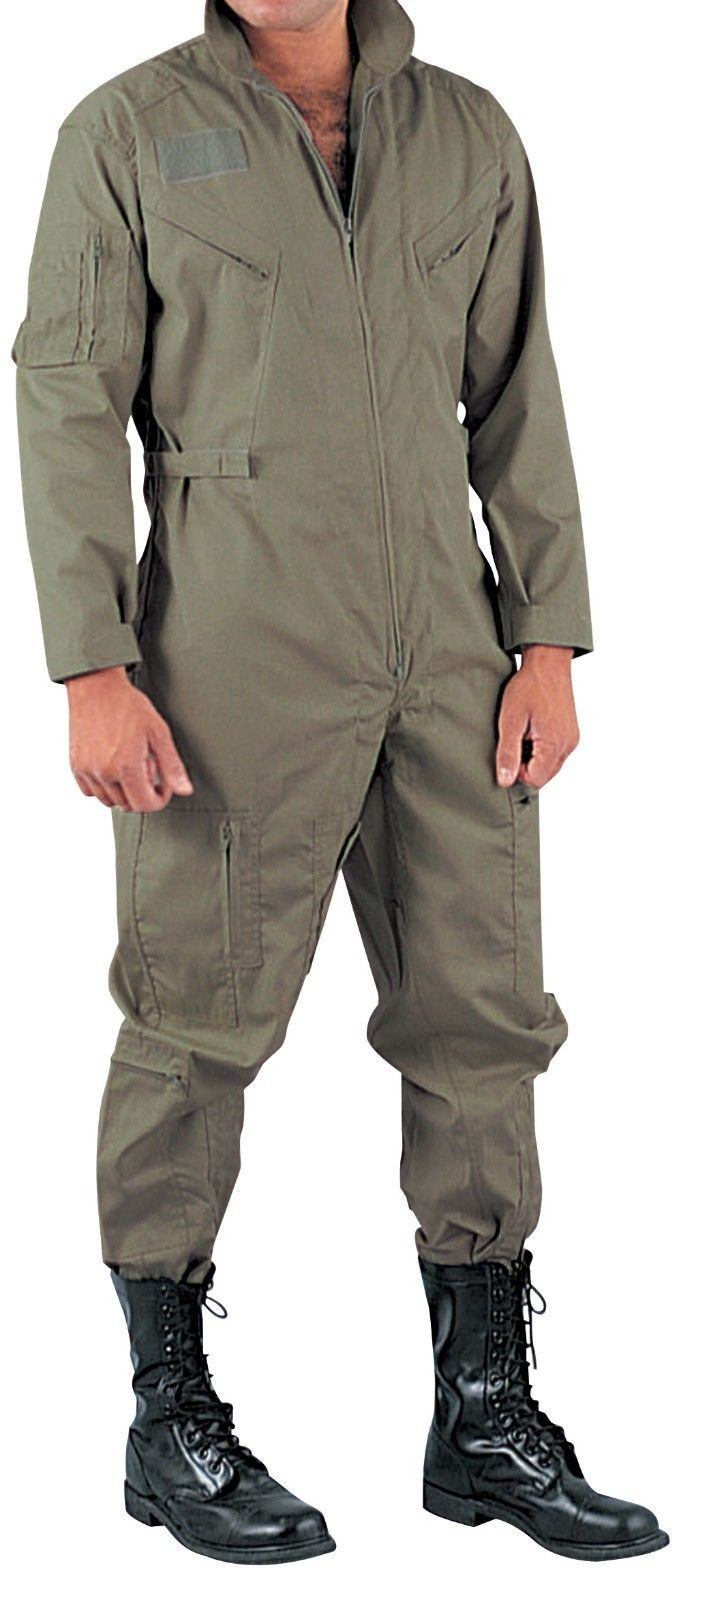 Air Force Style Flight Suit Cotton Coveralls Flightsuit Coveralls Flight Suit Overalls Men